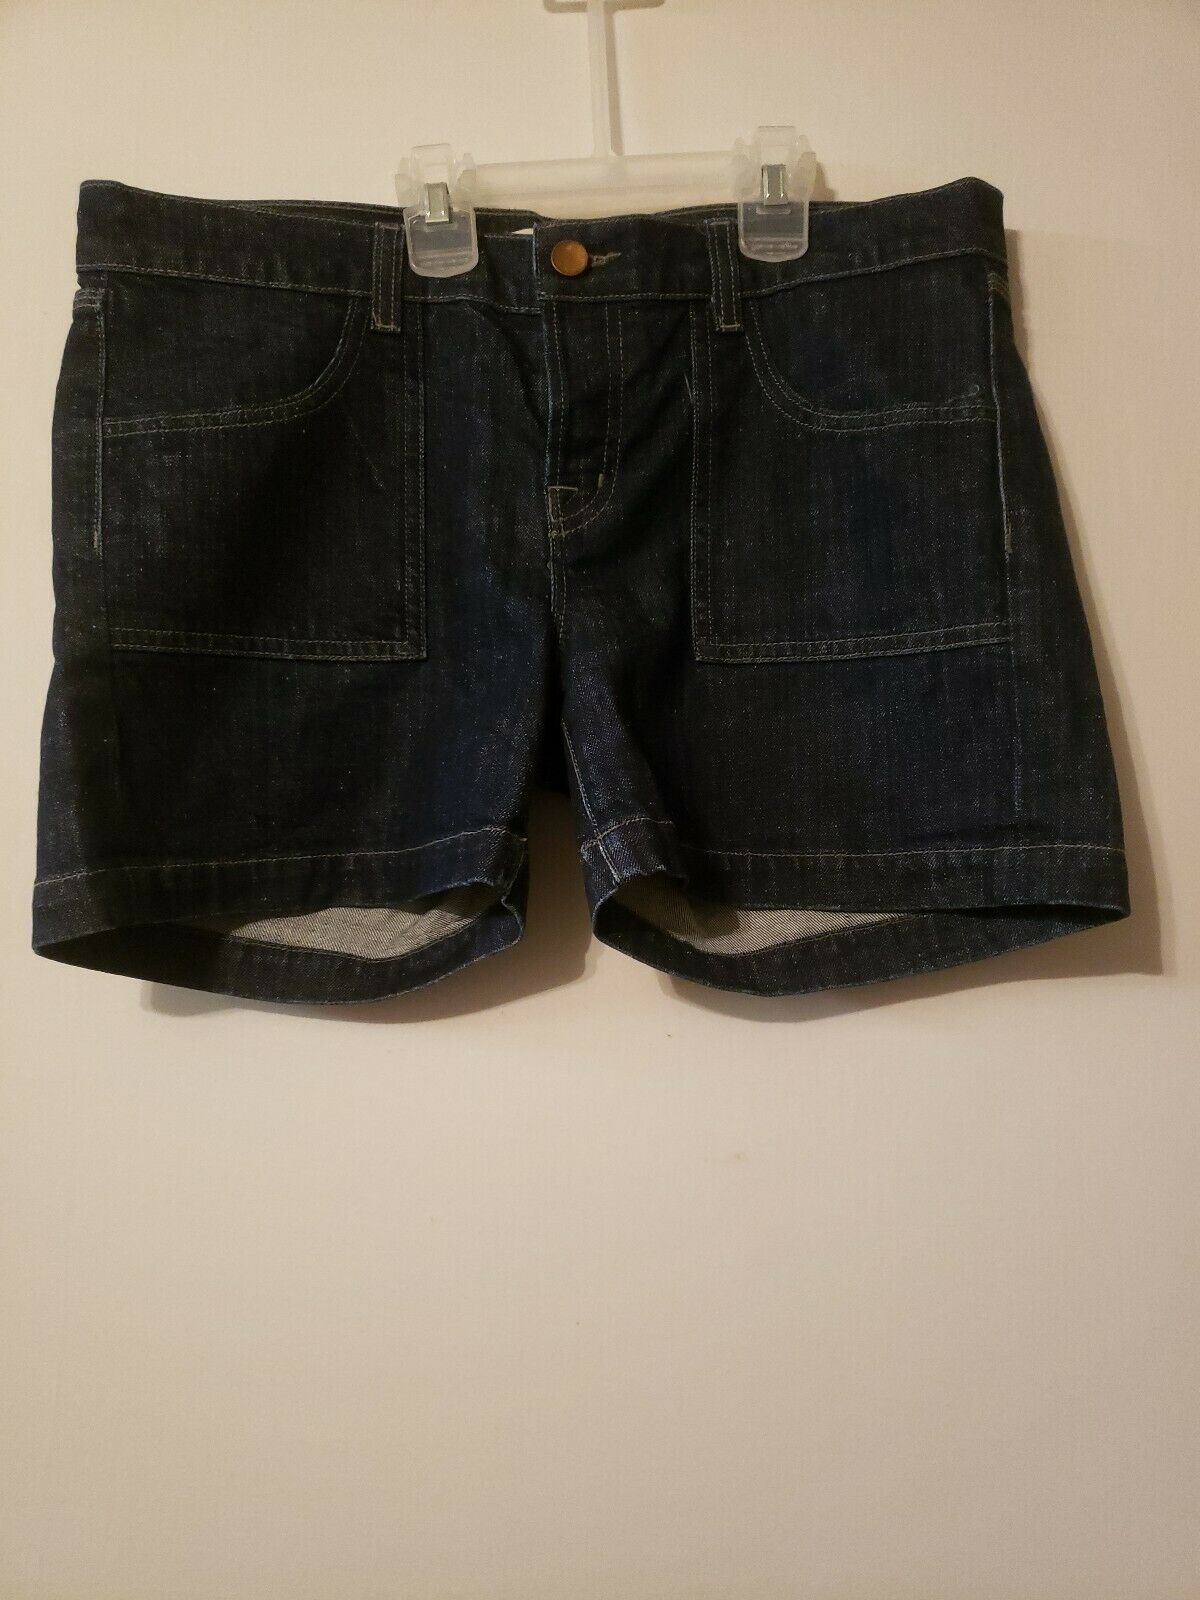 J Brand denim Shorts size 26 new without tags